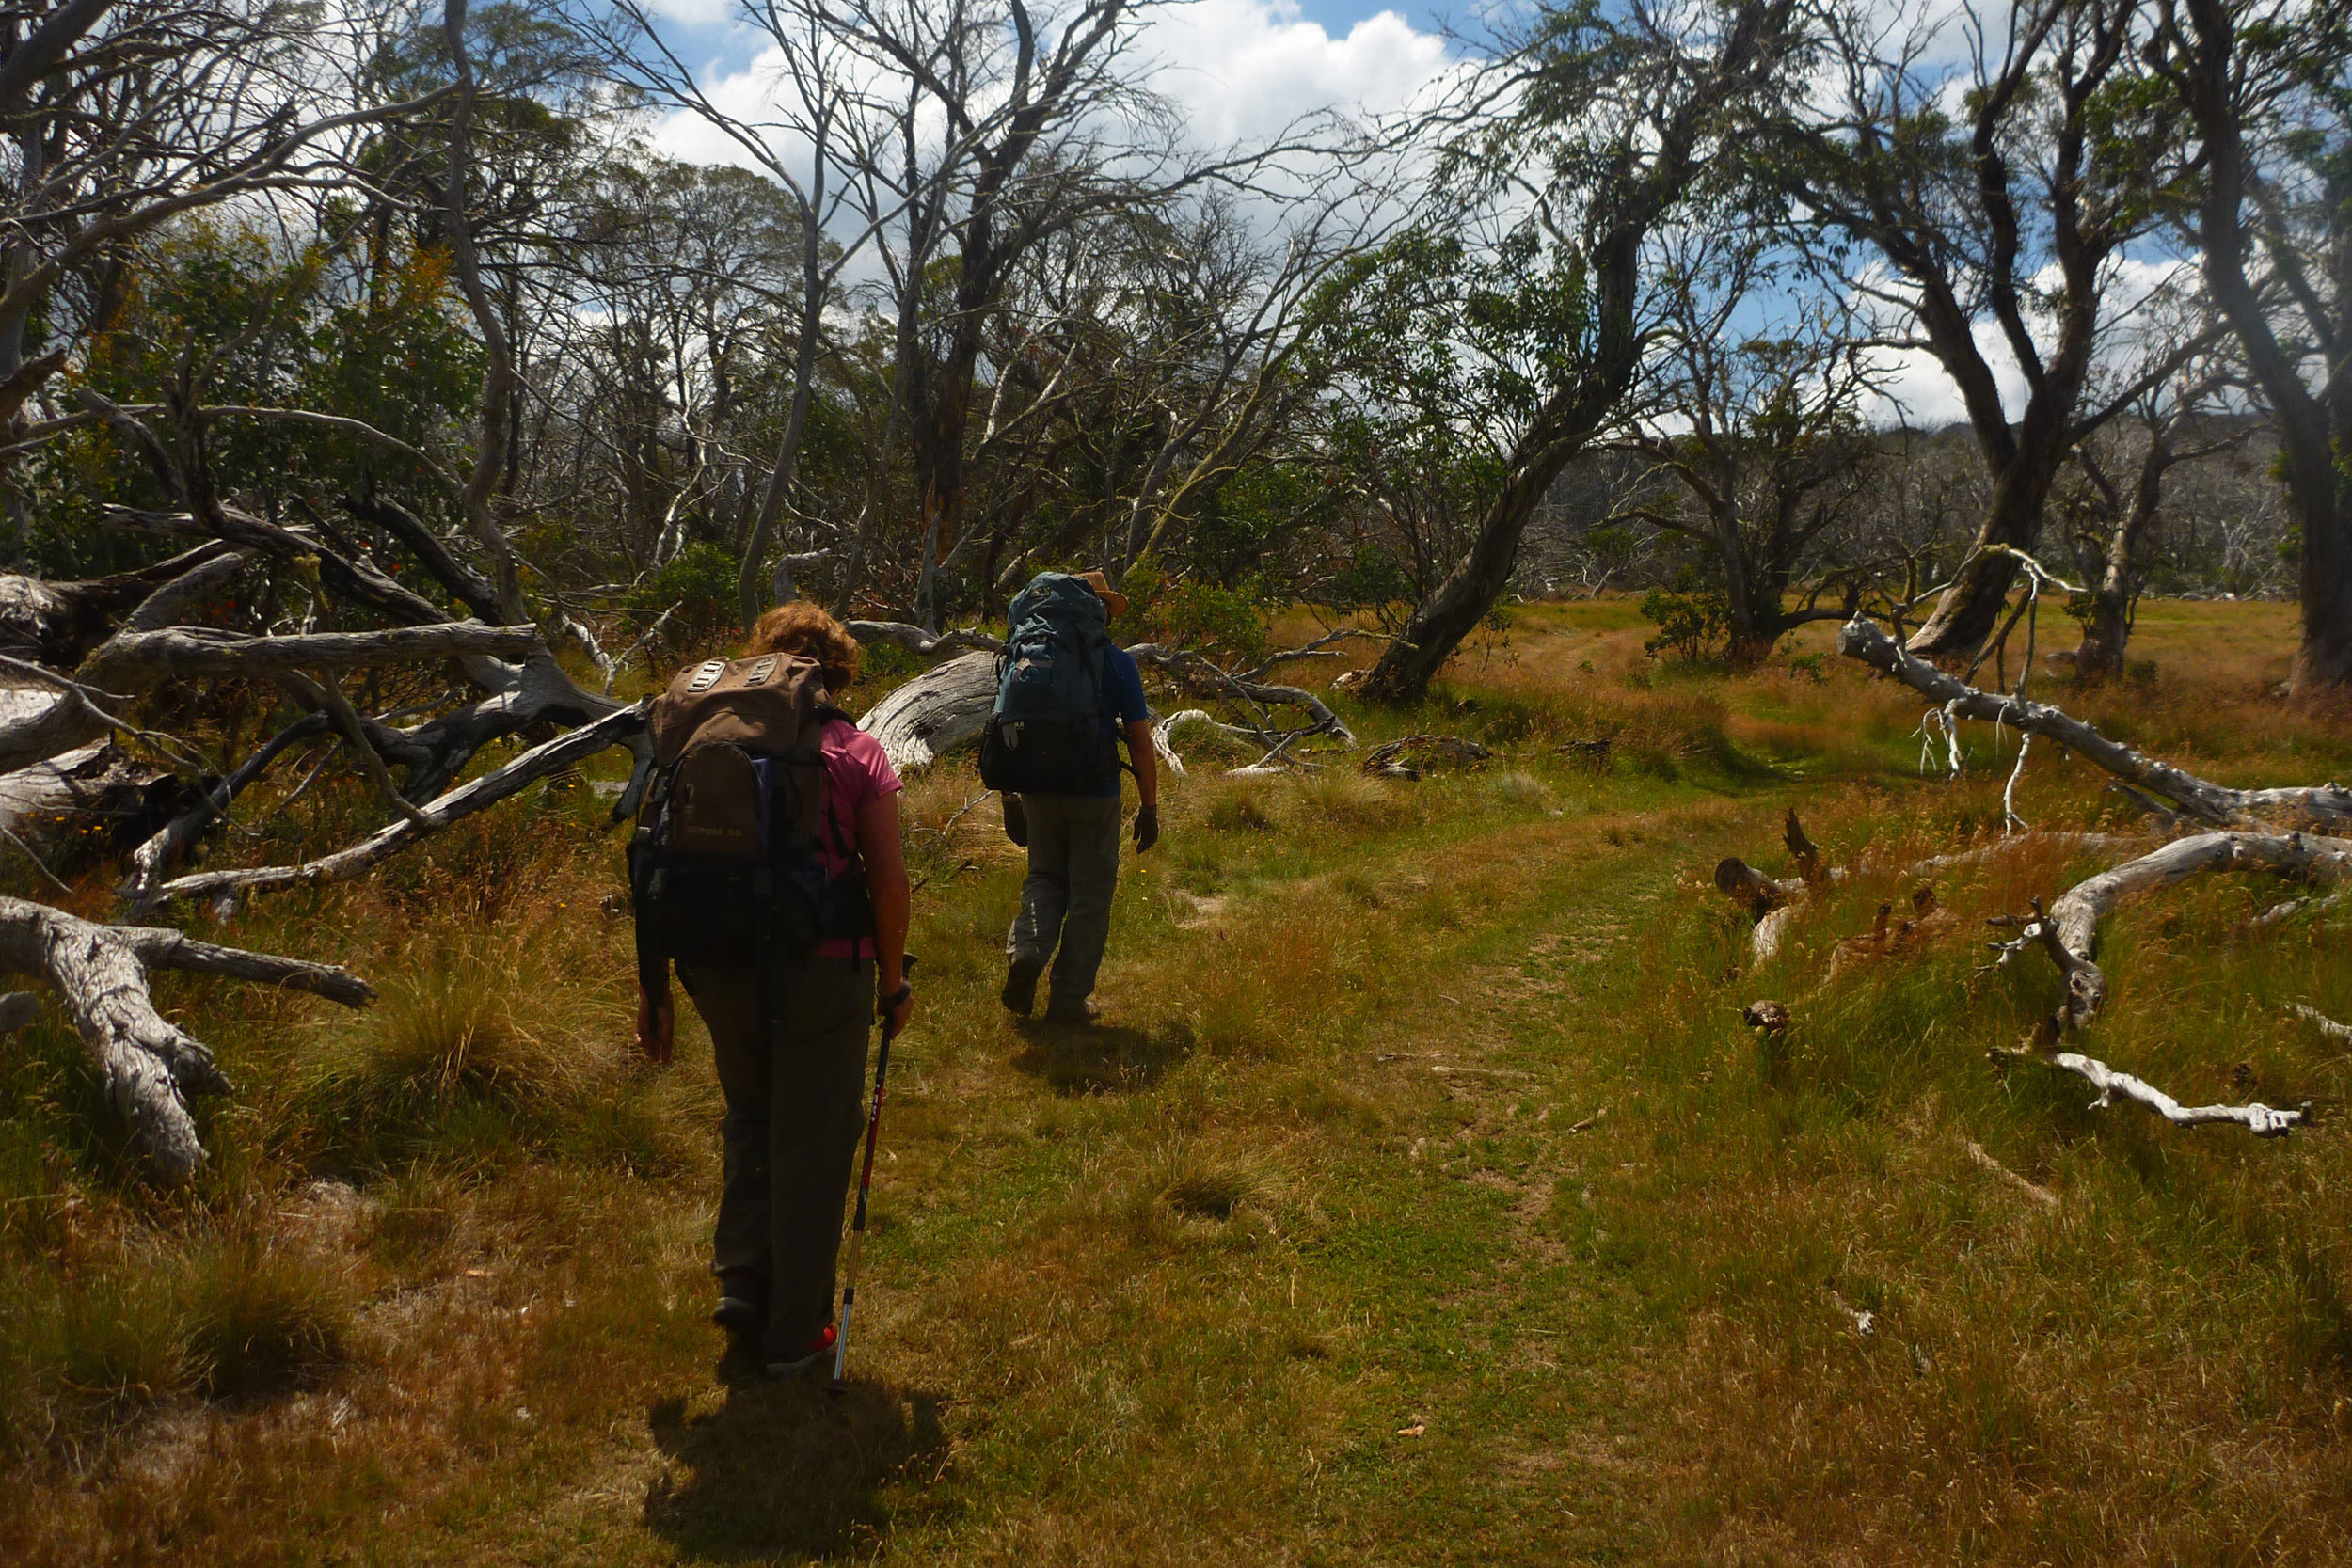 Bushwalking - The pristine High Country is a favourite with bushwalkers and hikers. You can simply go for a wander around the 30 acre Glen Wills property, or there are many trails in the surrounding area.